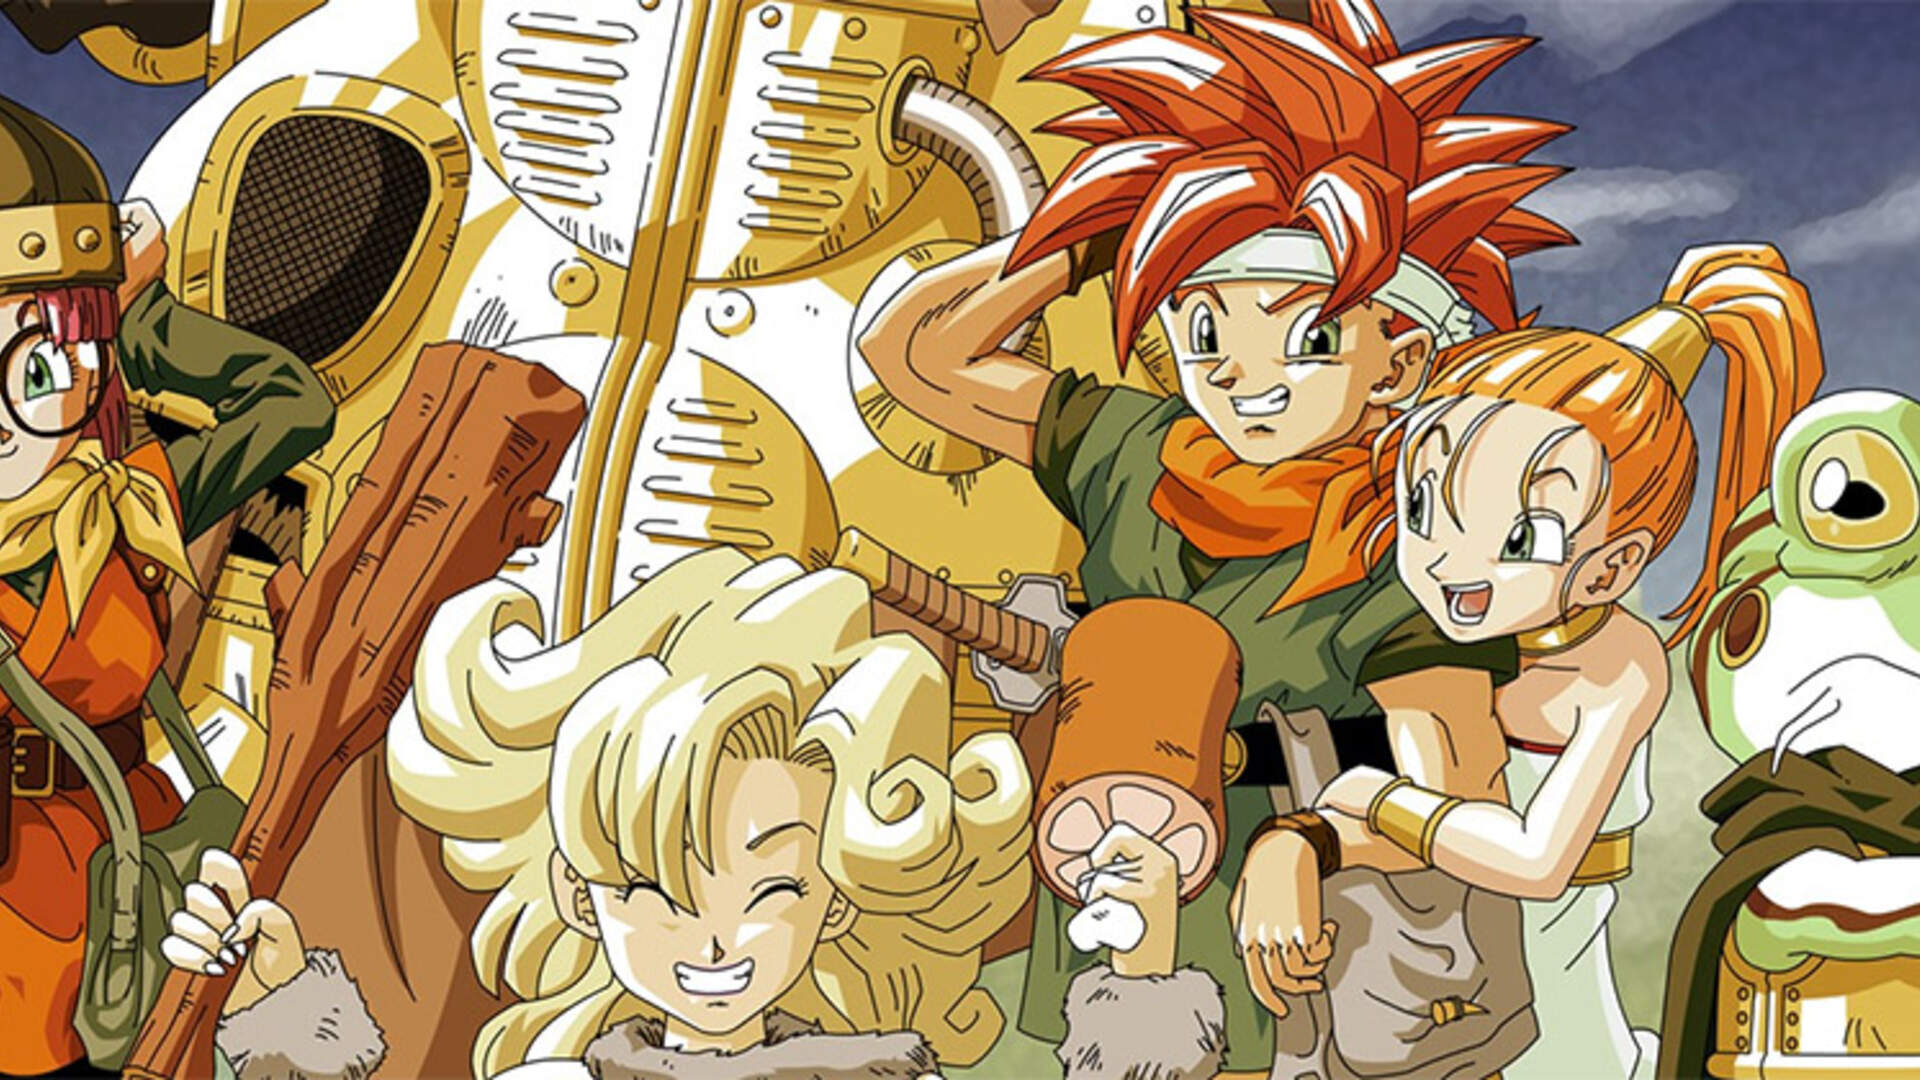 I'm Finally Playing Chrono Trigger for the First Time, and Holy Crap Does It Live Up to Its Reputation